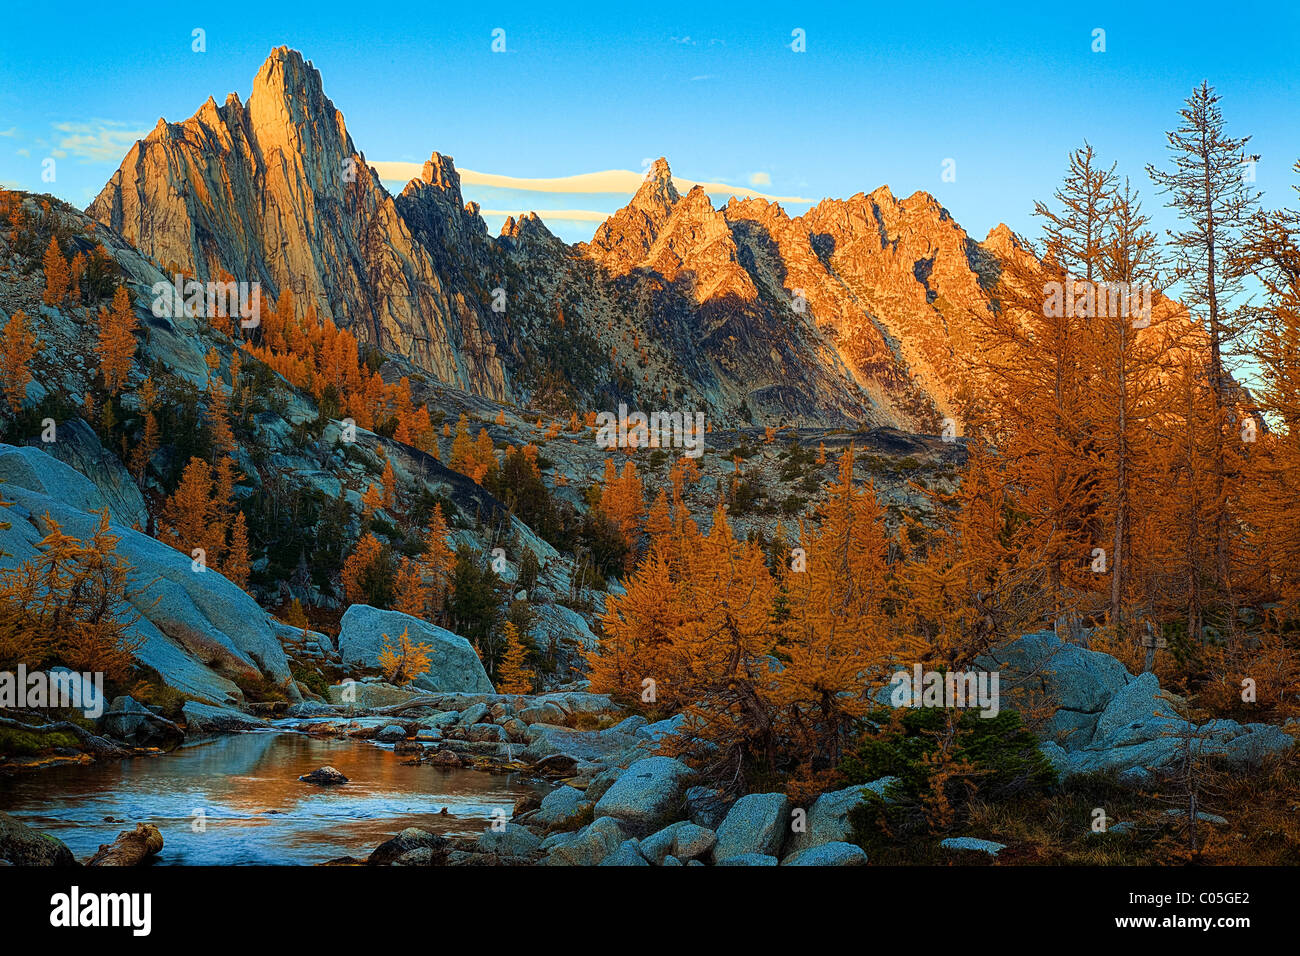 Prusik Peak and larch trees in the Enchantment Lakes wilderness area - Stock Image